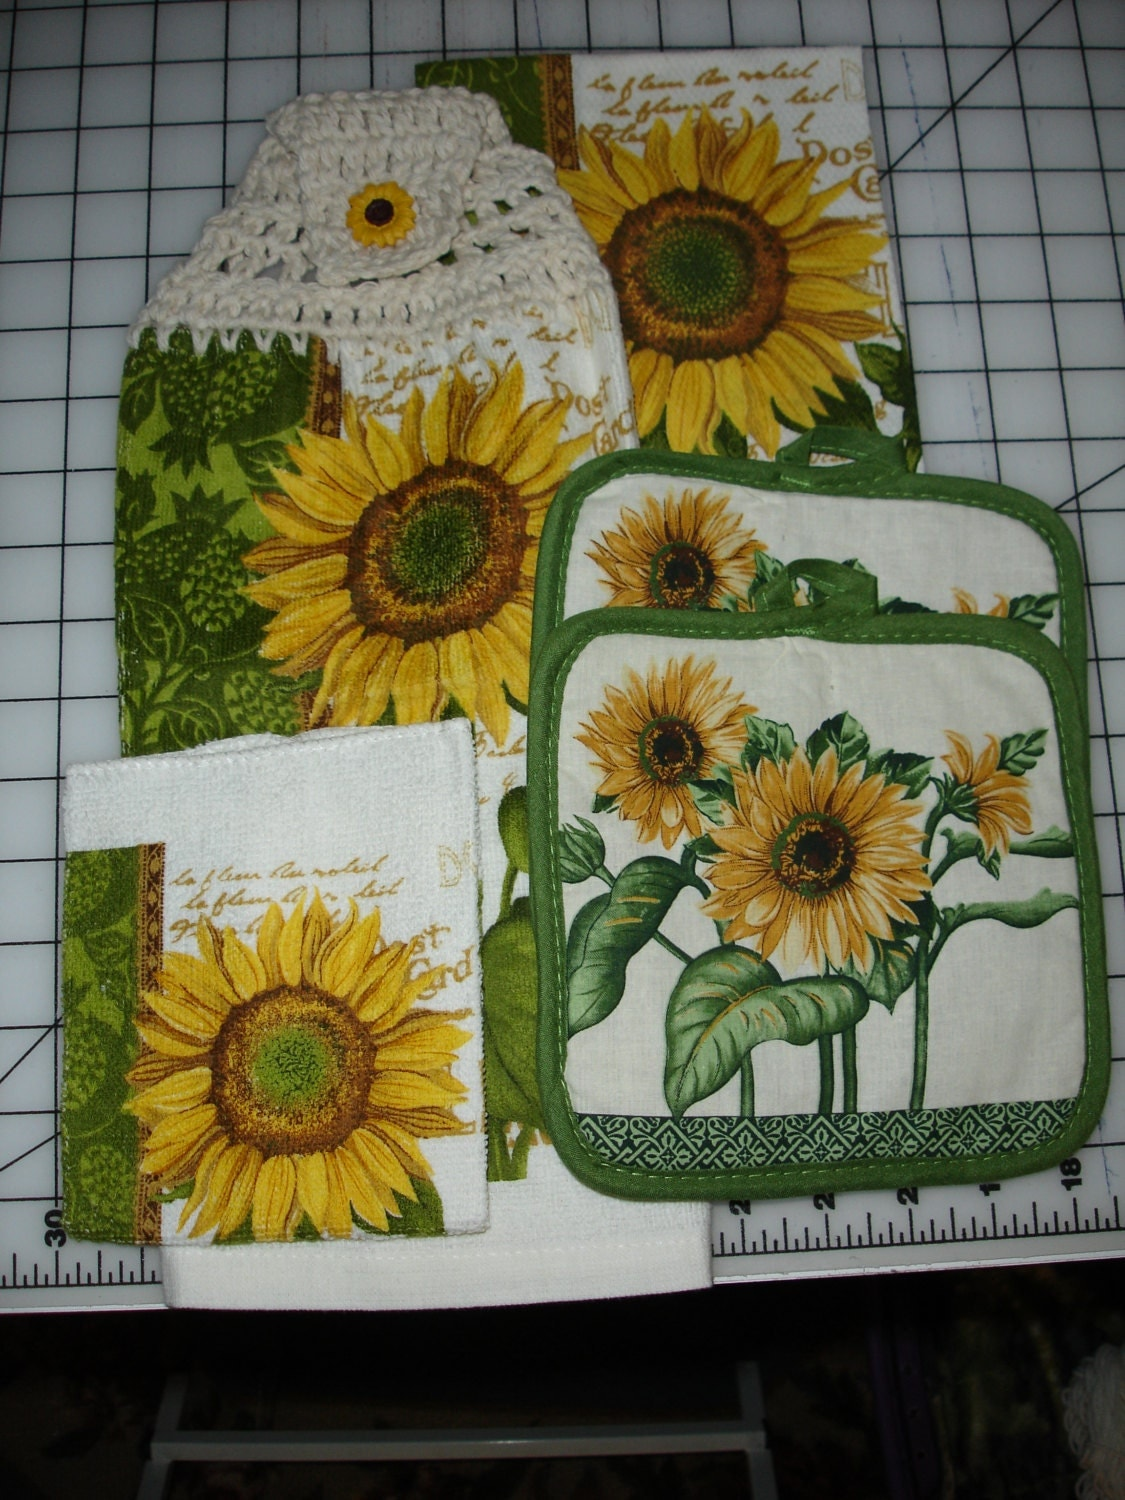 Sunflower 5 Piece Kitchen Towel Set. Laundry Room Curtains. Toddler Girl Room Design Ideas. Pull Out Dining Room Table. The Green Room Game. Teen Fucked In Dorm Room. 10x10 Room Design. Tiny Laundry Room. Expedit As Room Divider